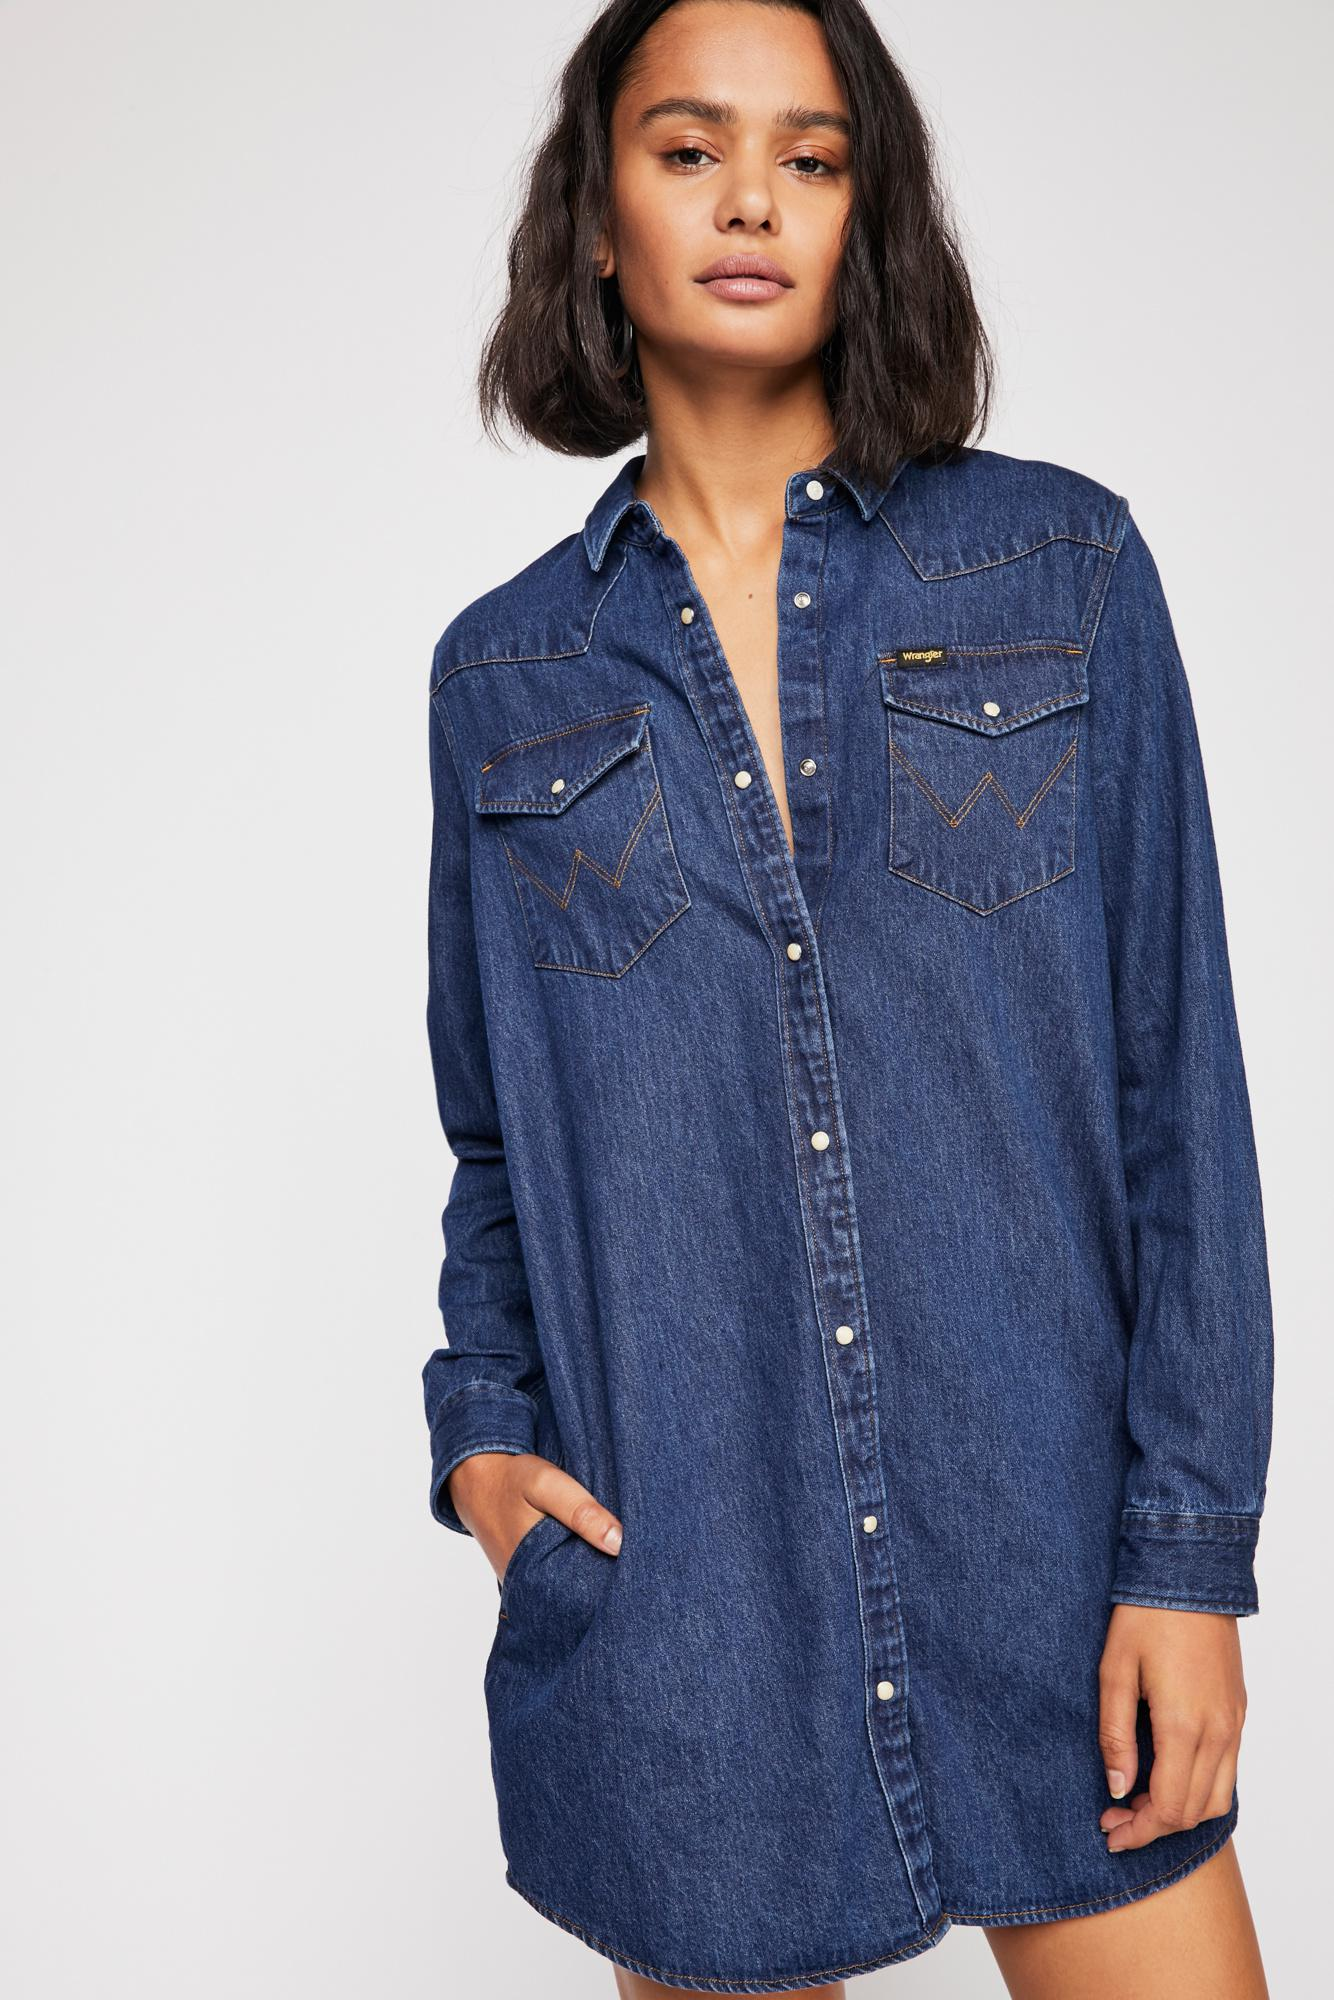 248c0acc8a Lyst - Free People Wrangler Denim Dress in Blue - Save 30%